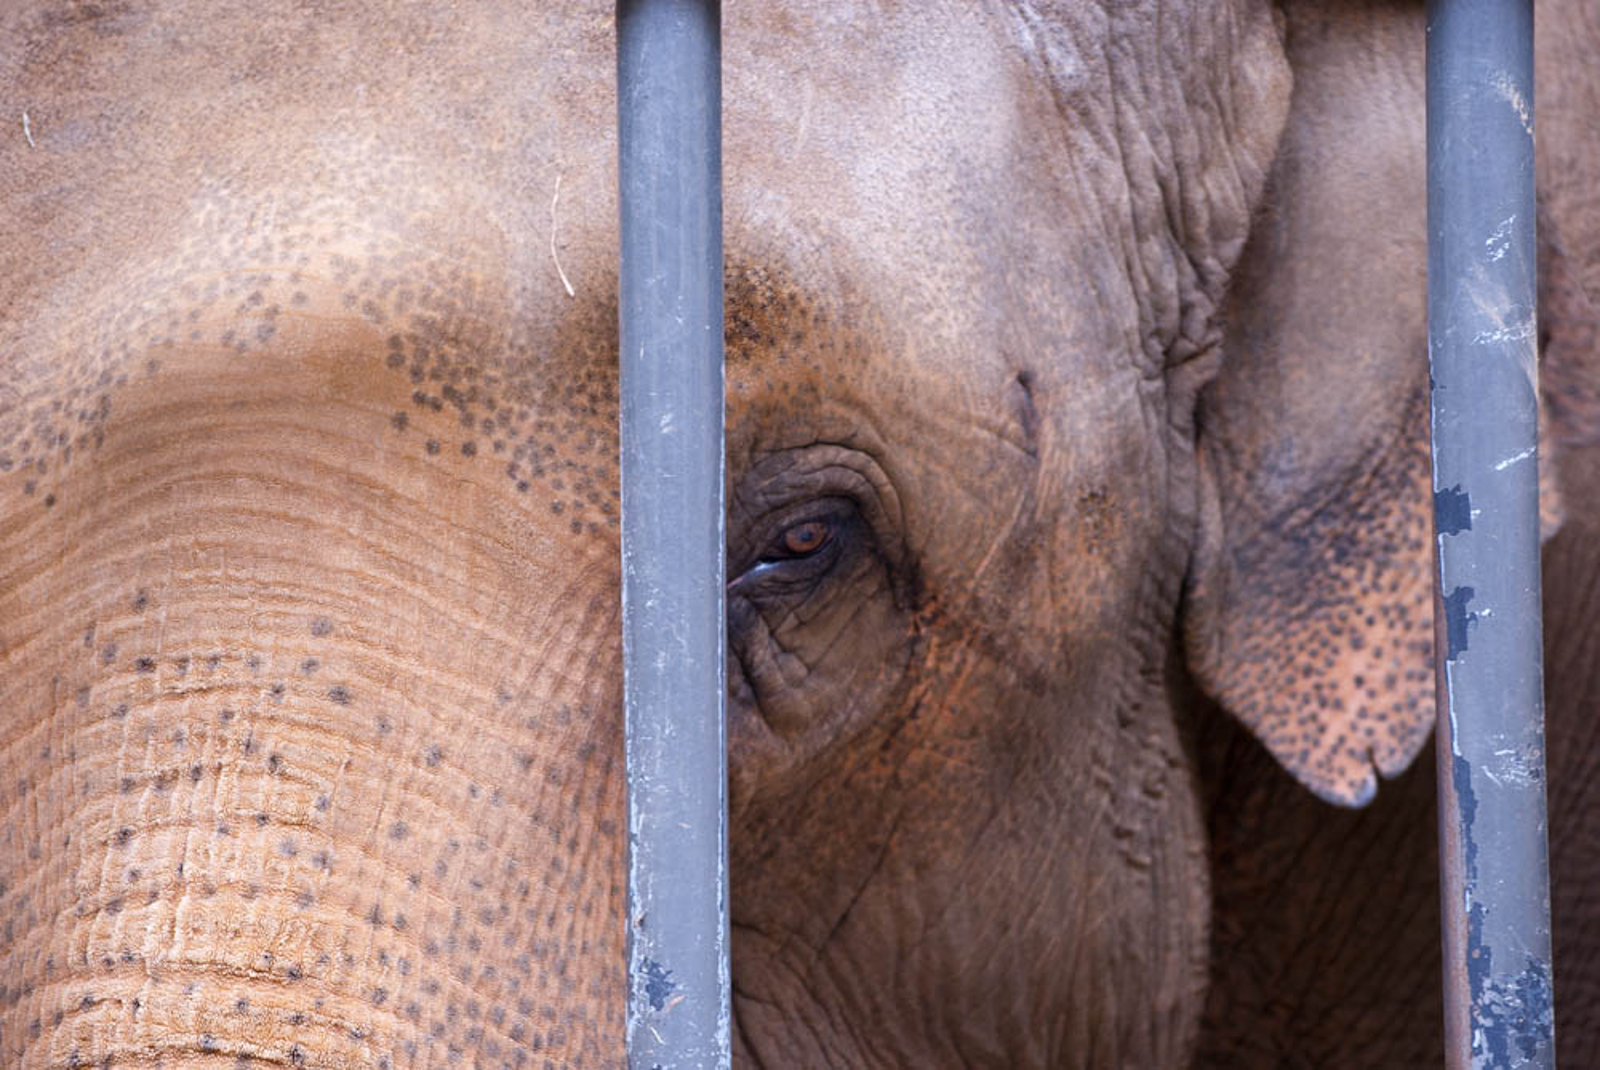 Why Elephants Don't Belong in Zoos!